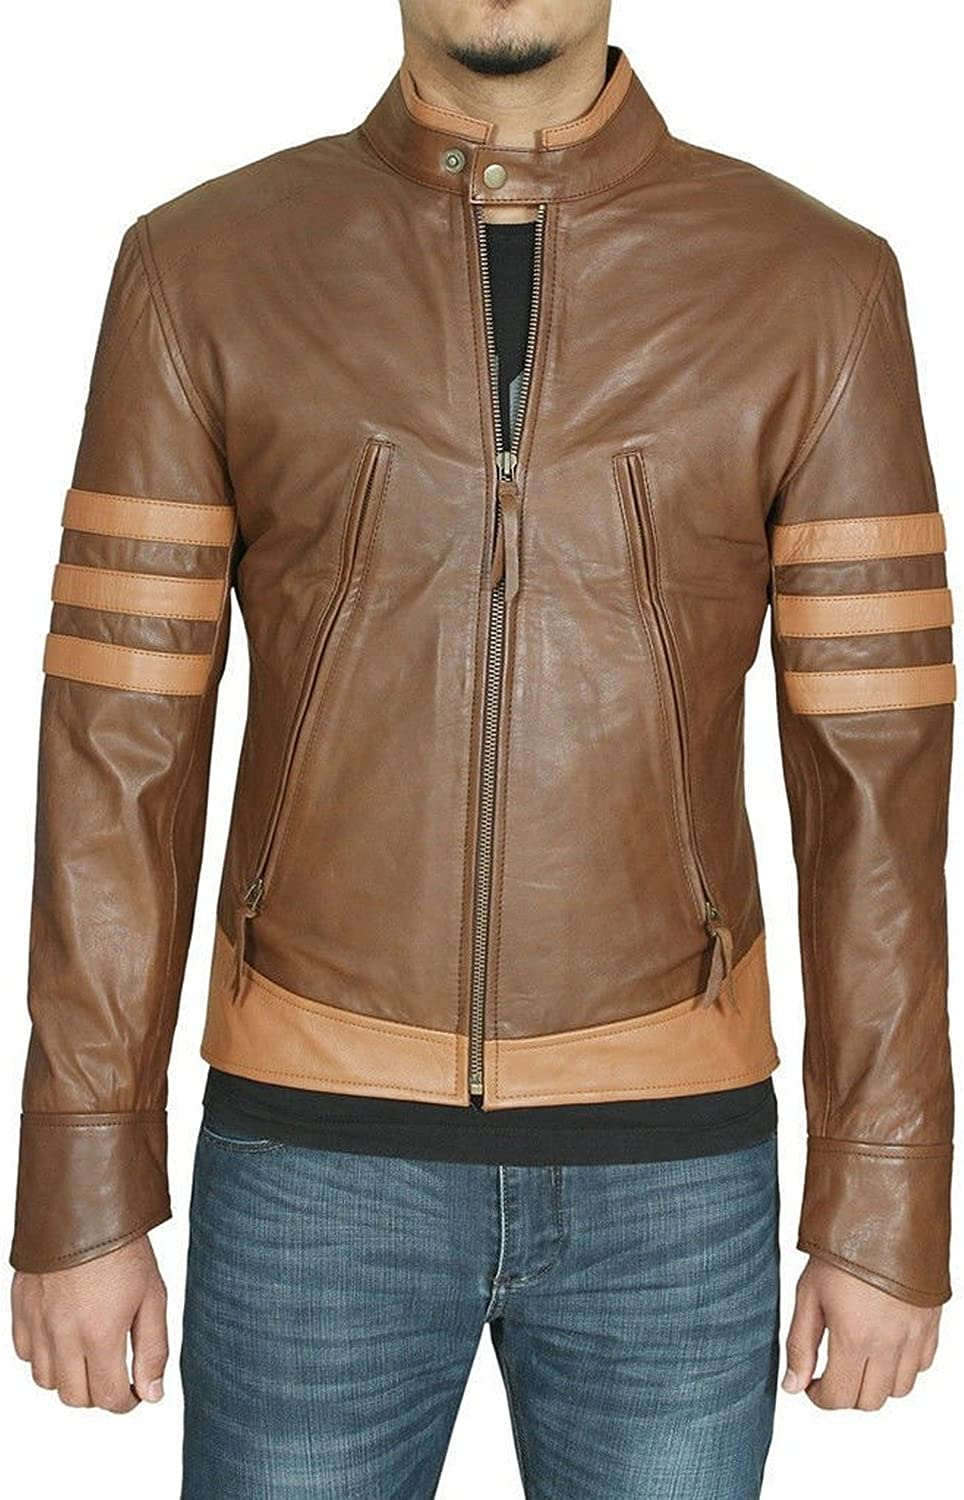 New Men Quilted Leather Jacket Soft Lambskin Biker Bomber T839